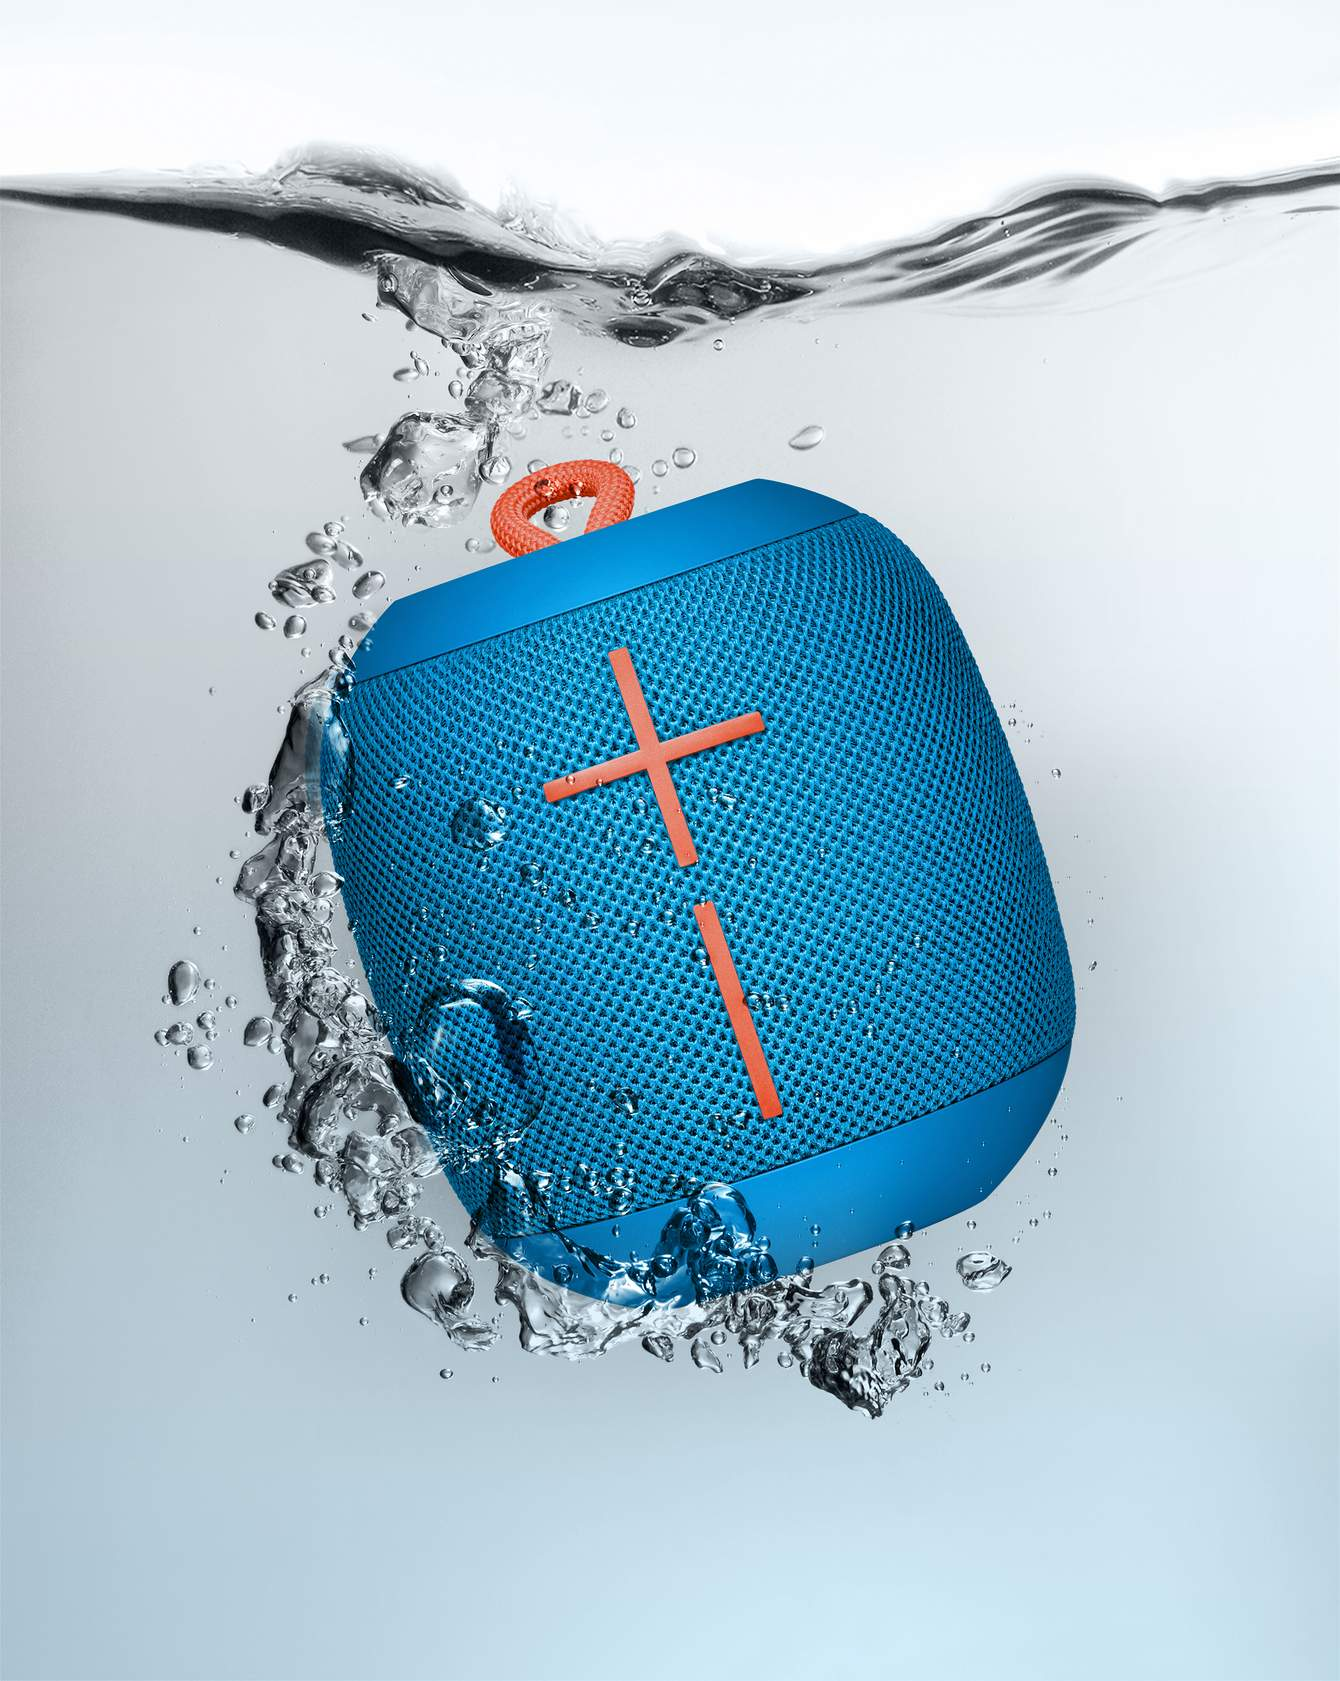 Ultimate Ears Wonderboom-SubZero Blue - Hitta högtalare hos Advized 79842998f2ebe